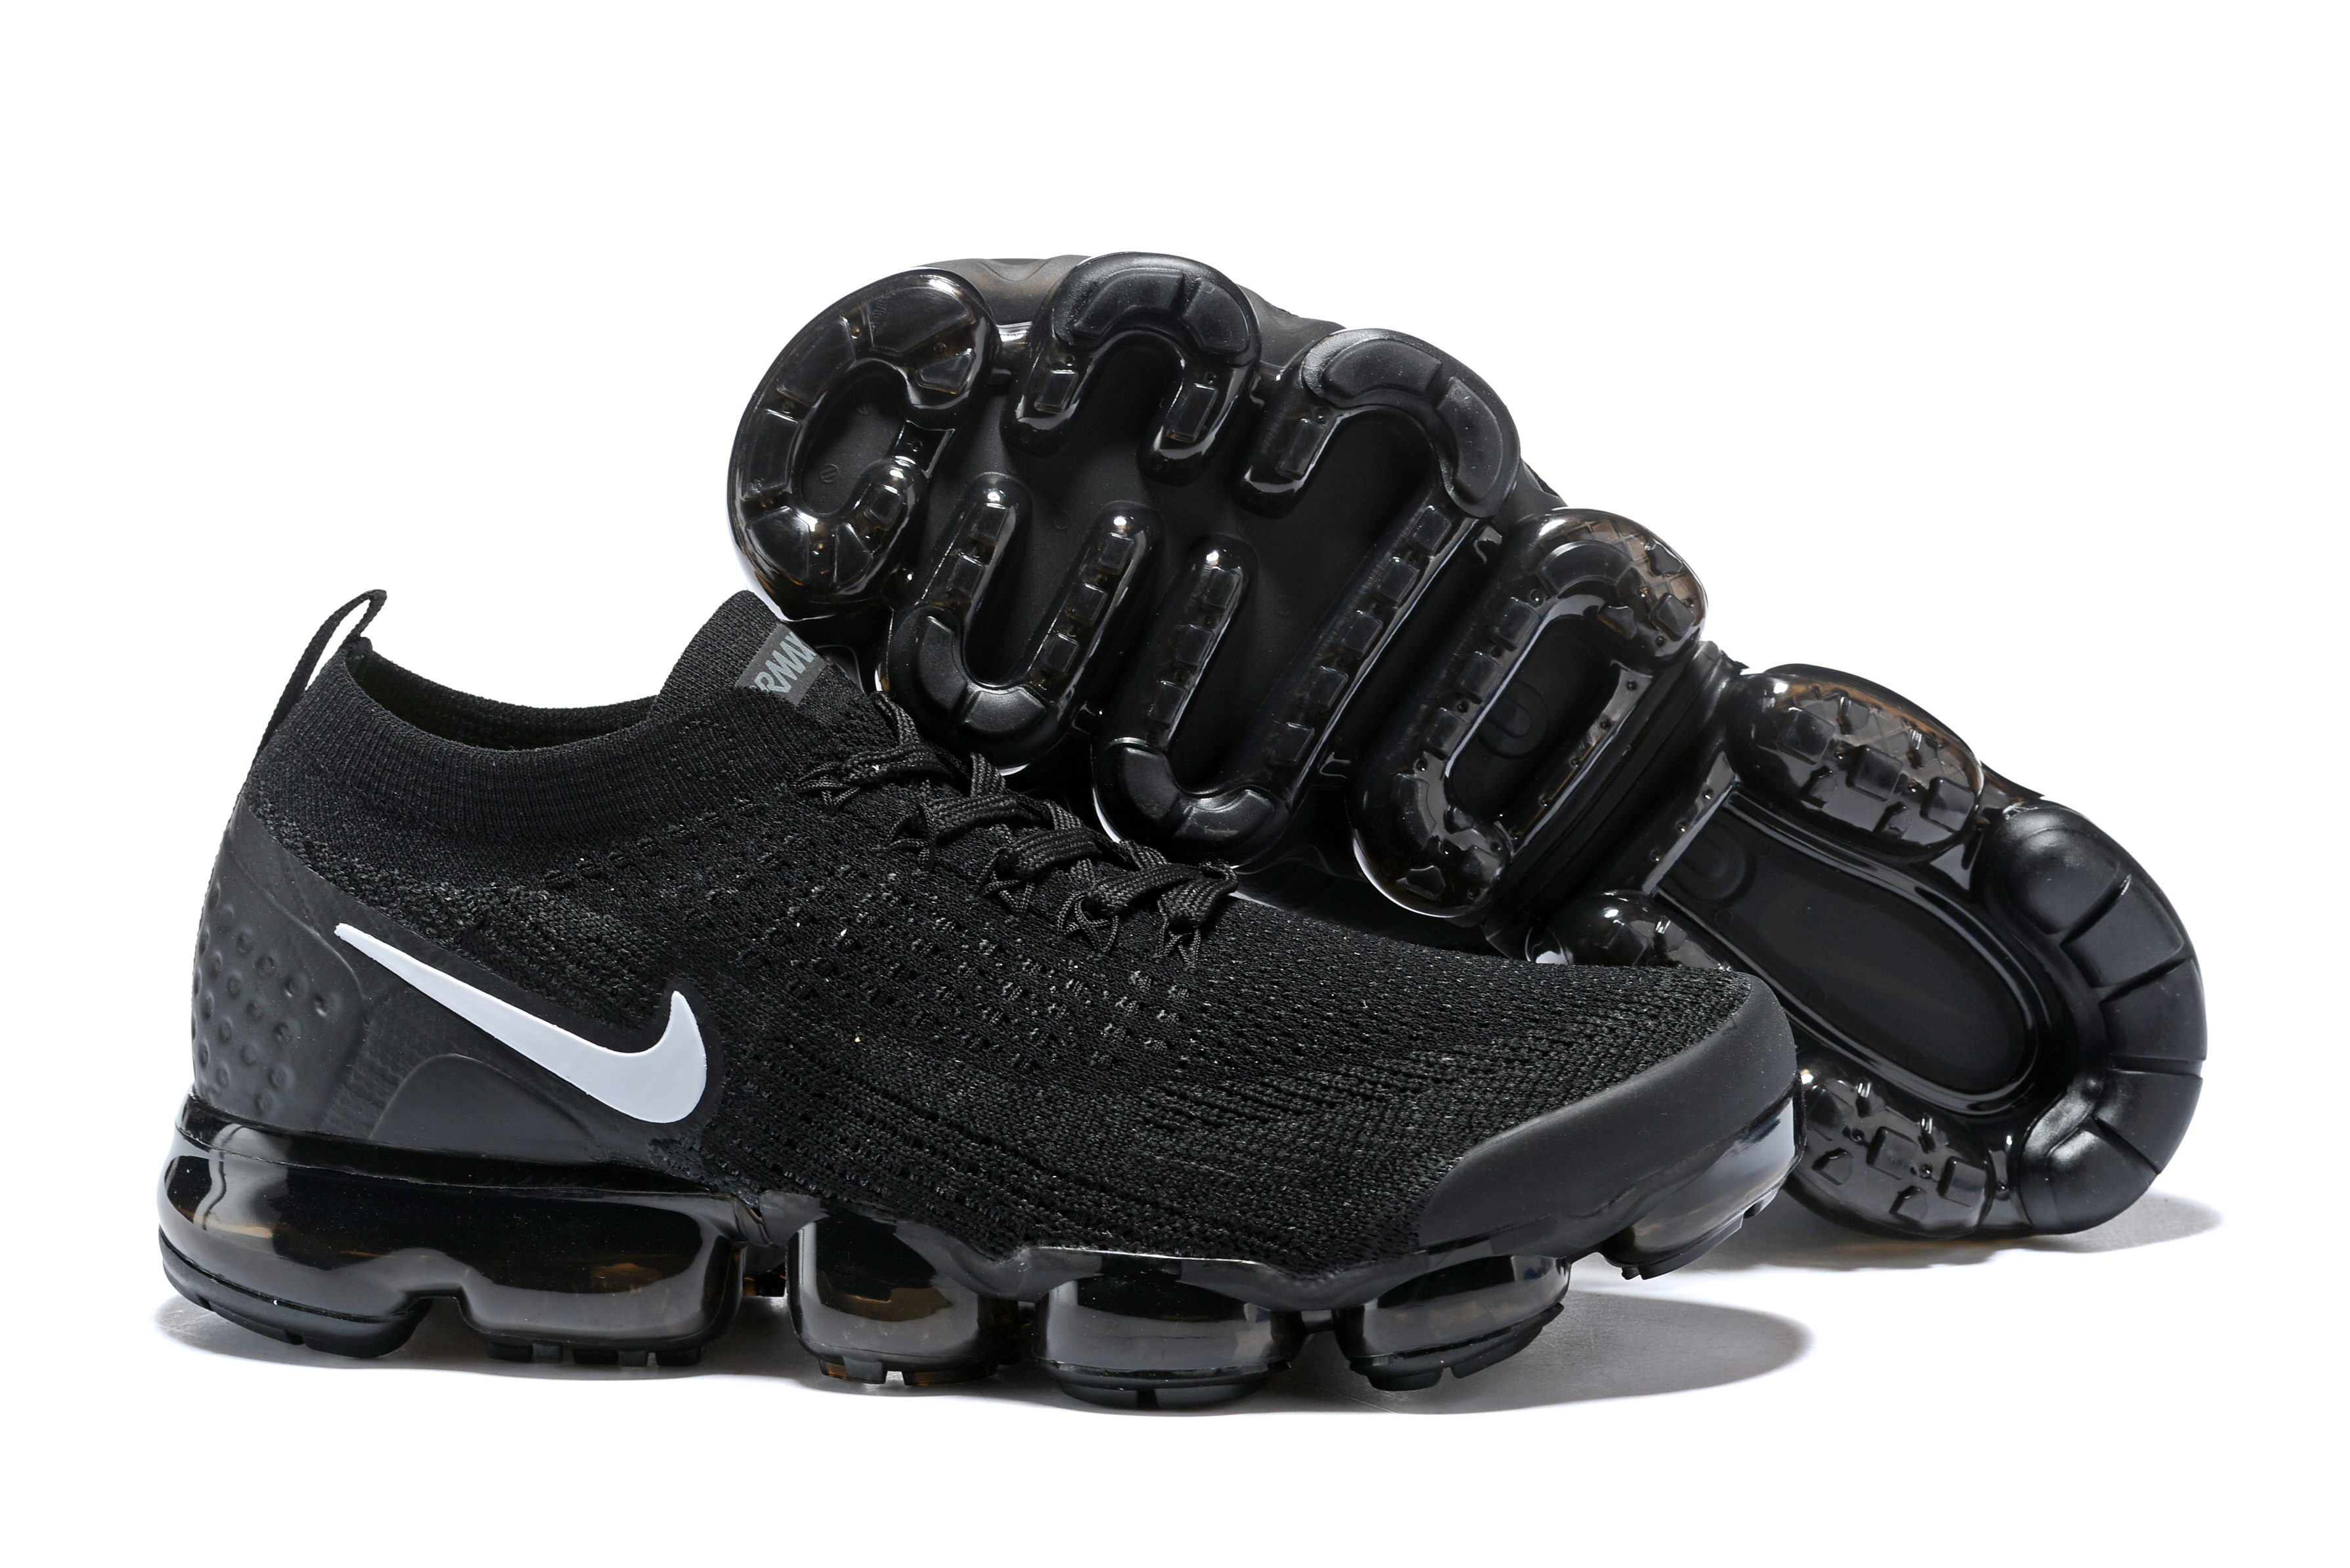 Women 2018 Nike Air VaporMax II All Black White Shoes